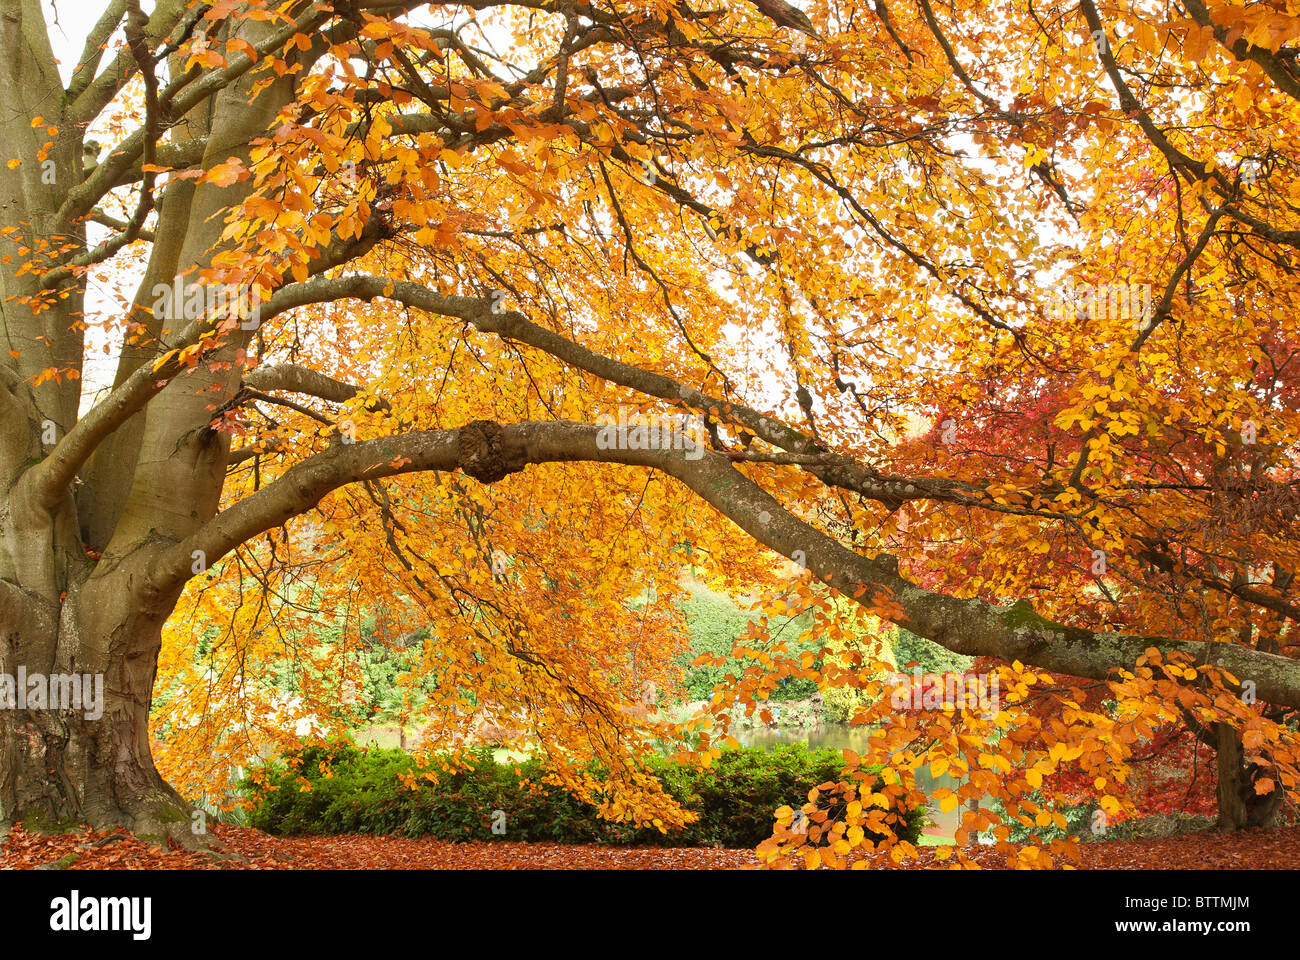 sweeping branches full of beautiful colored leaves - Stock Image